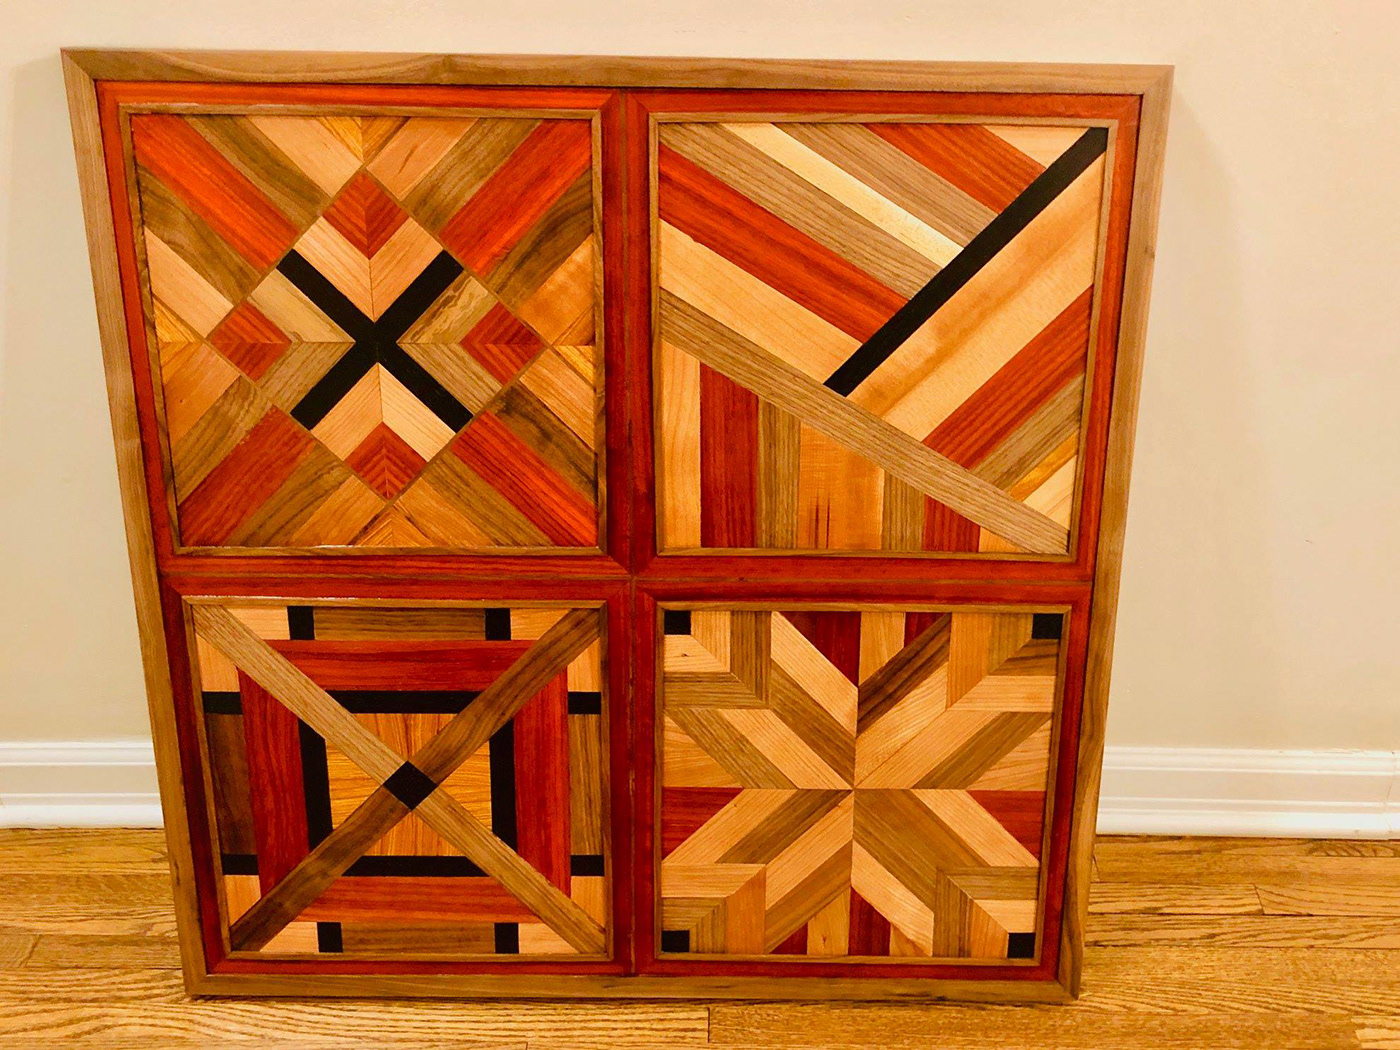 Wall hanging of mixed scrap wood including padauk, walnut, canary wood, cherry, wenge, and alder